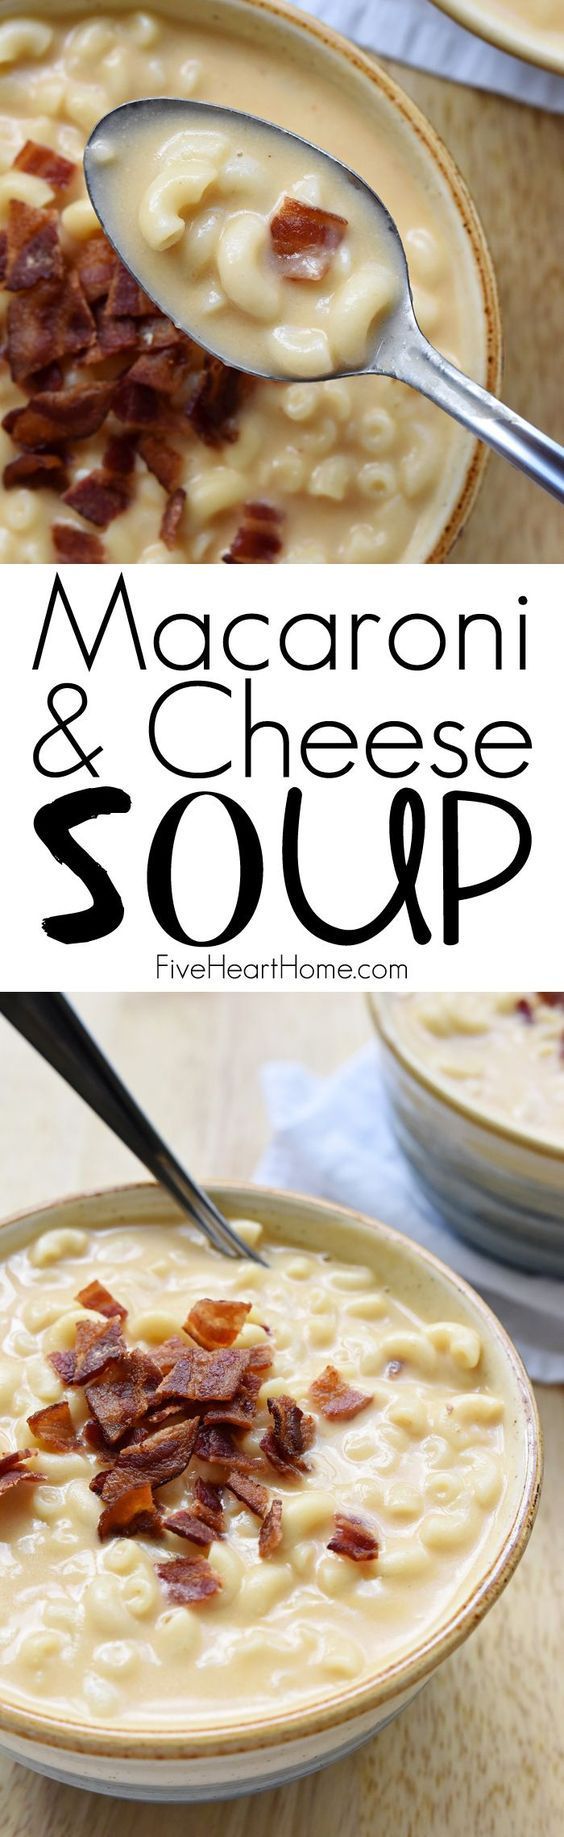 Macaroni & Cheese Soup ~ this creamy, cheesy, decadent recipe is topped with crispy bacon for the ultimate cool weather comfort food!